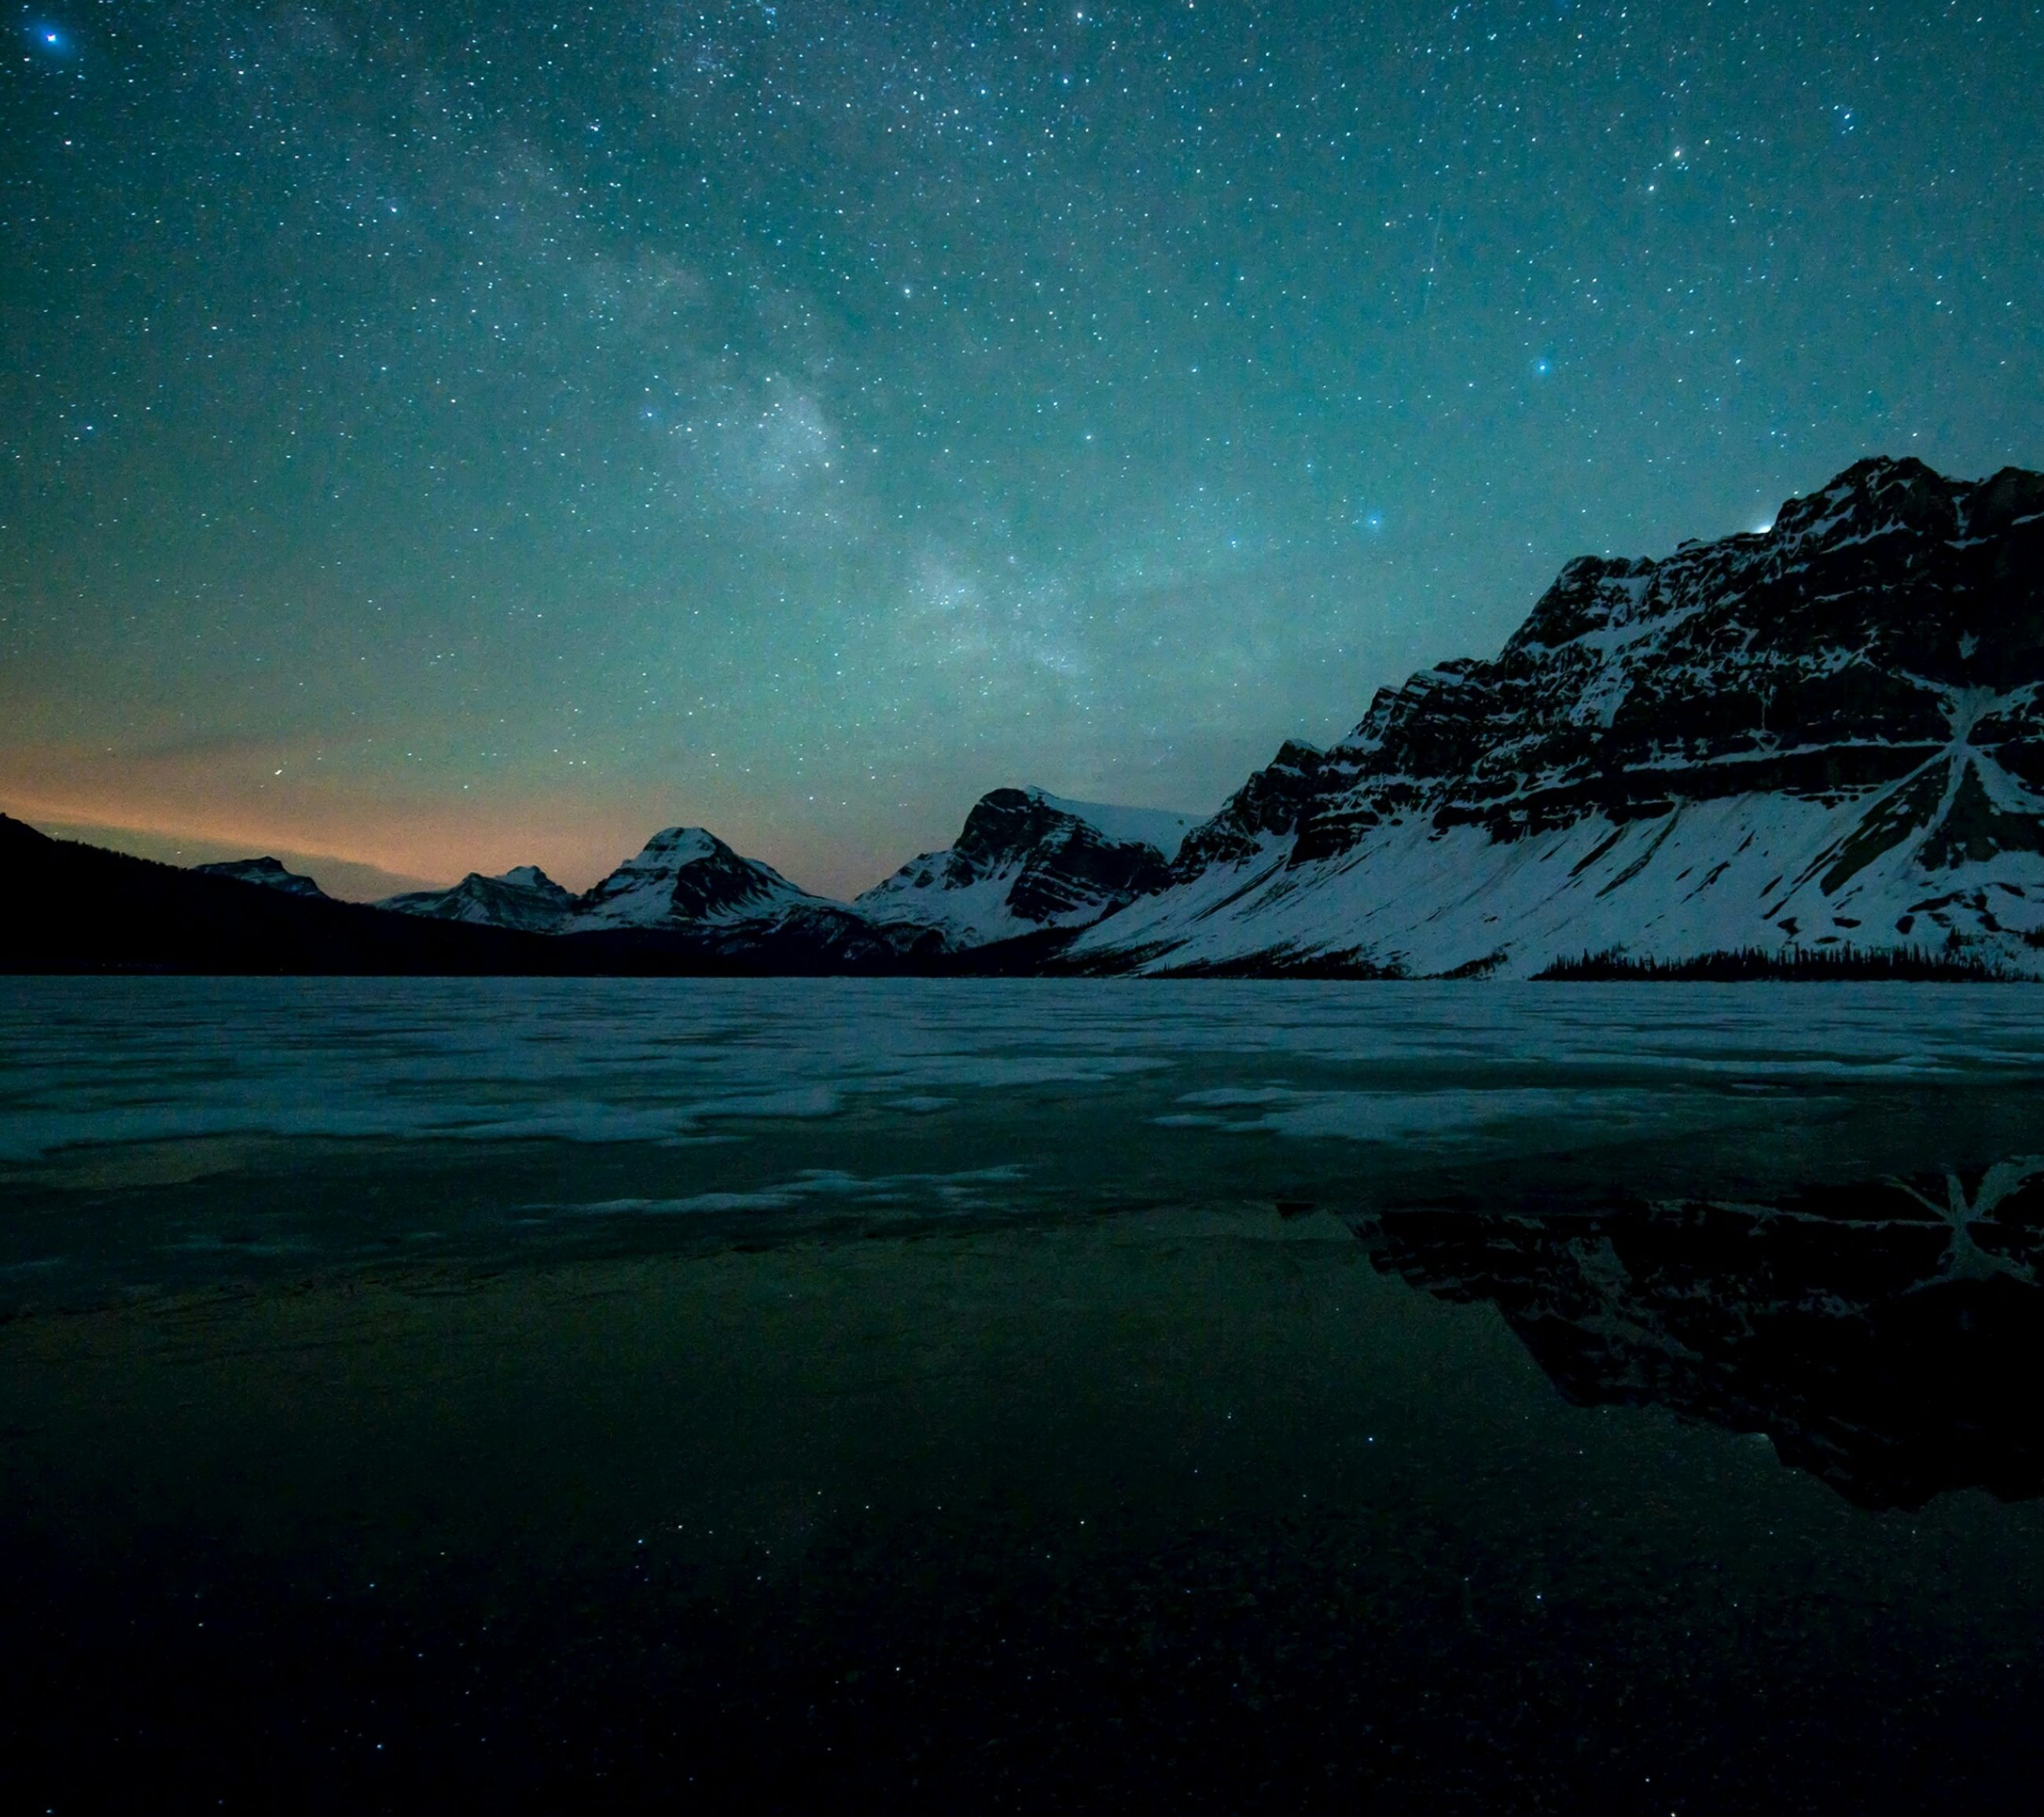 tranquil scene, scenics, night, tranquility, beauty in nature, mountain, star - space, water, nature, mountain range, sky, star field, idyllic, astronomy, snow, lake, majestic, winter, blue, cold temperature